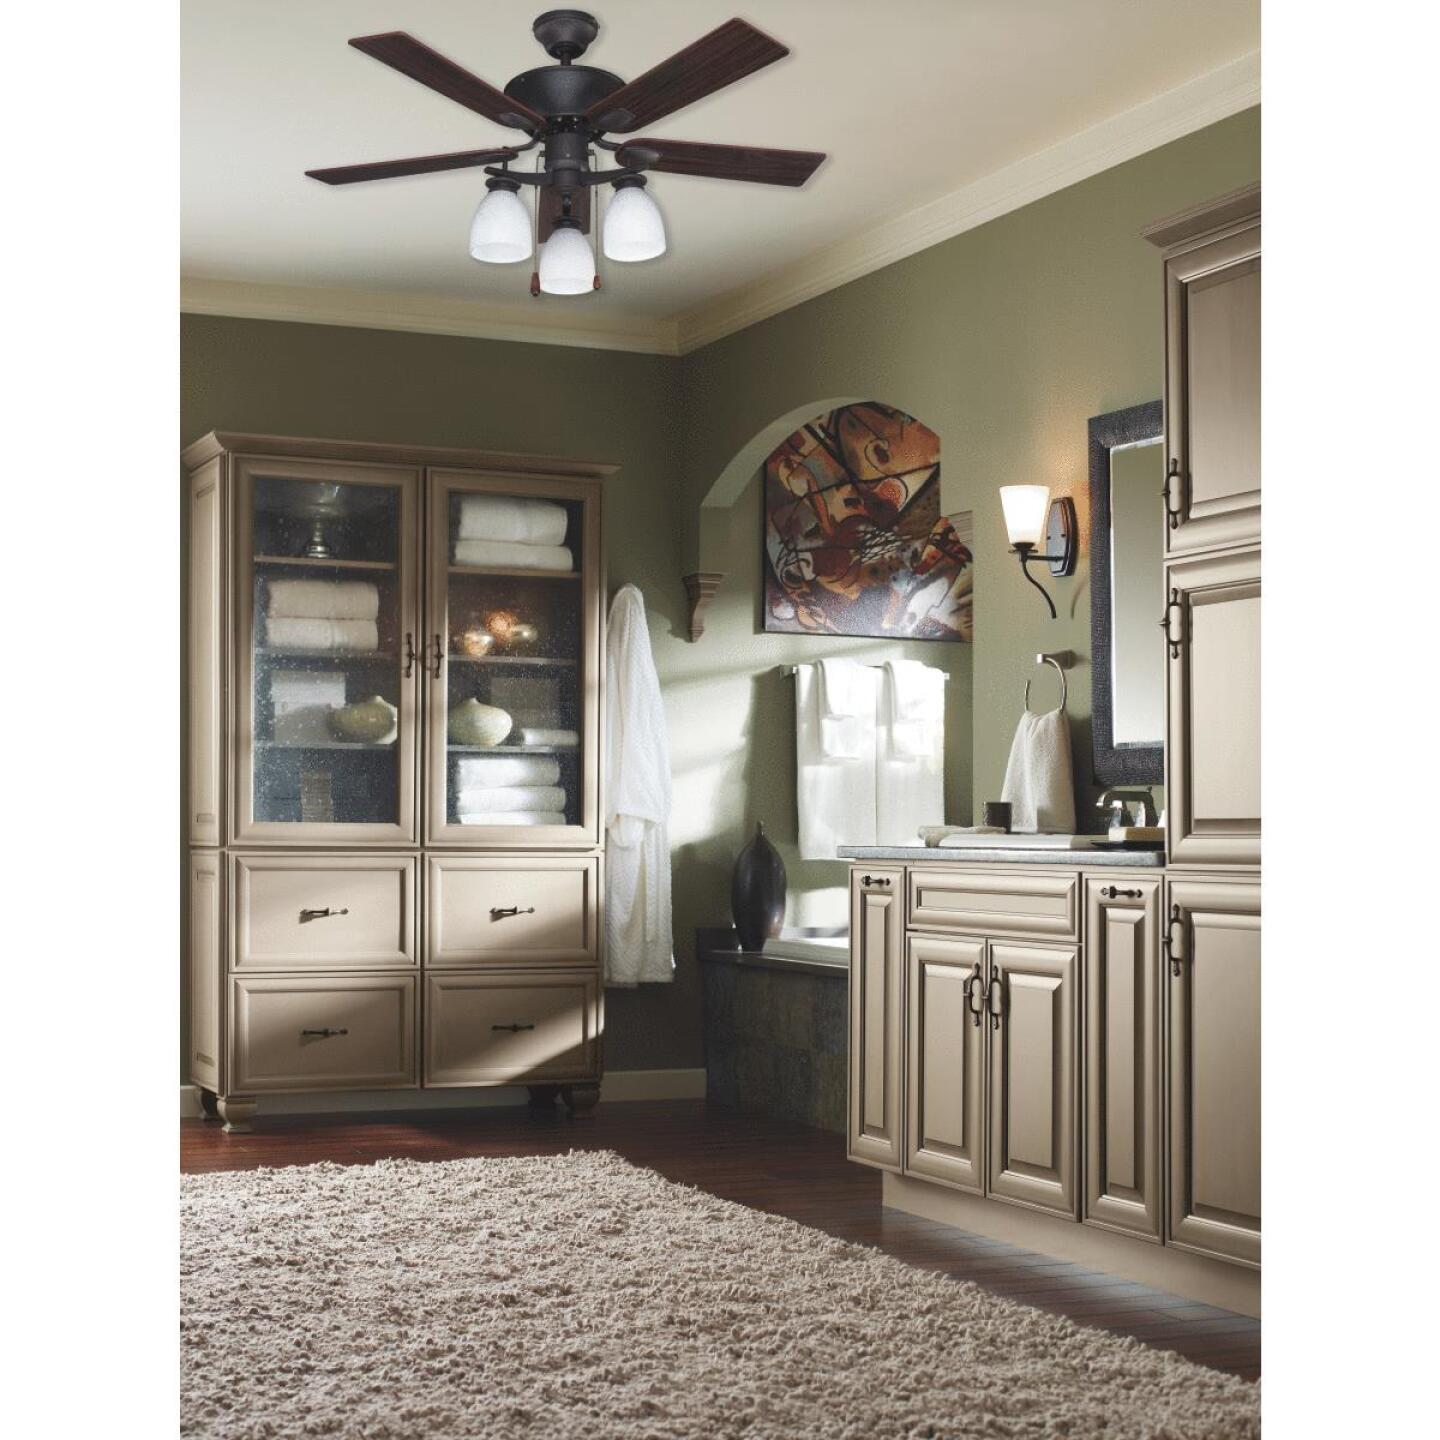 Home Impressions New Yorker 42 In. Oil Rubbed Bronze Ceiling Fan with Light Kit Image 4